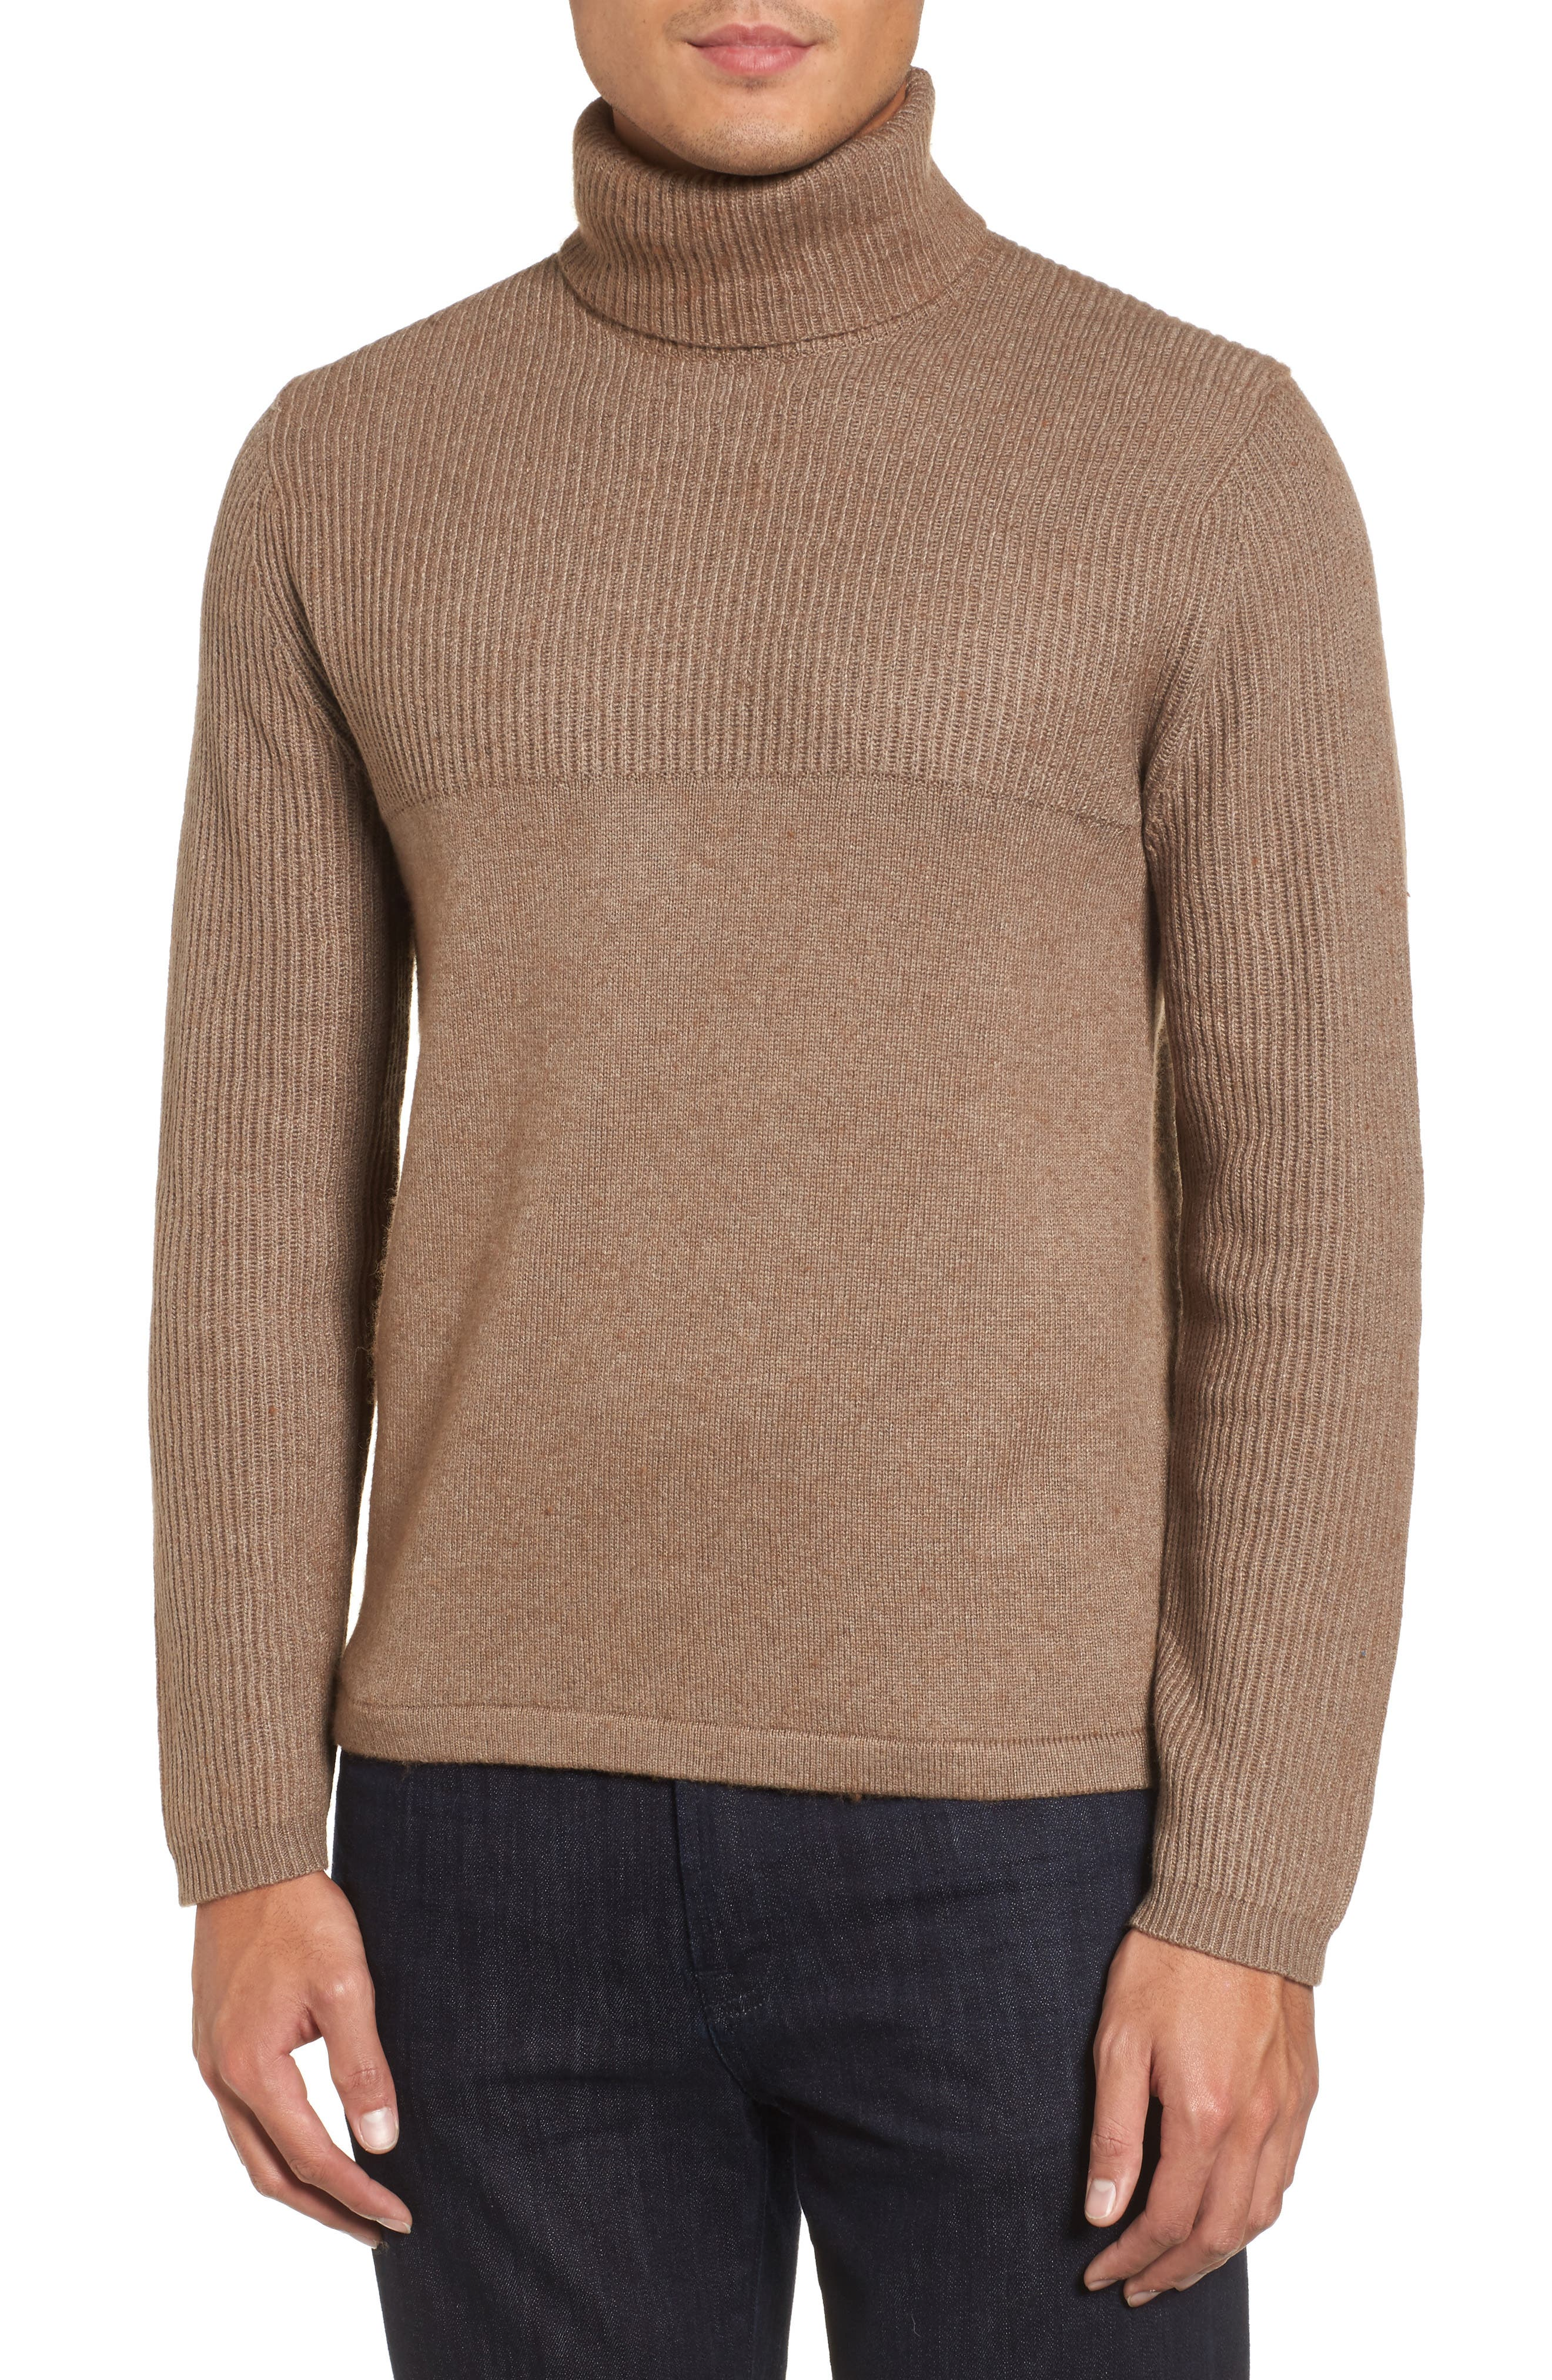 Main Image - Zachary Prell Mix Stitch Turtleneck Sweater